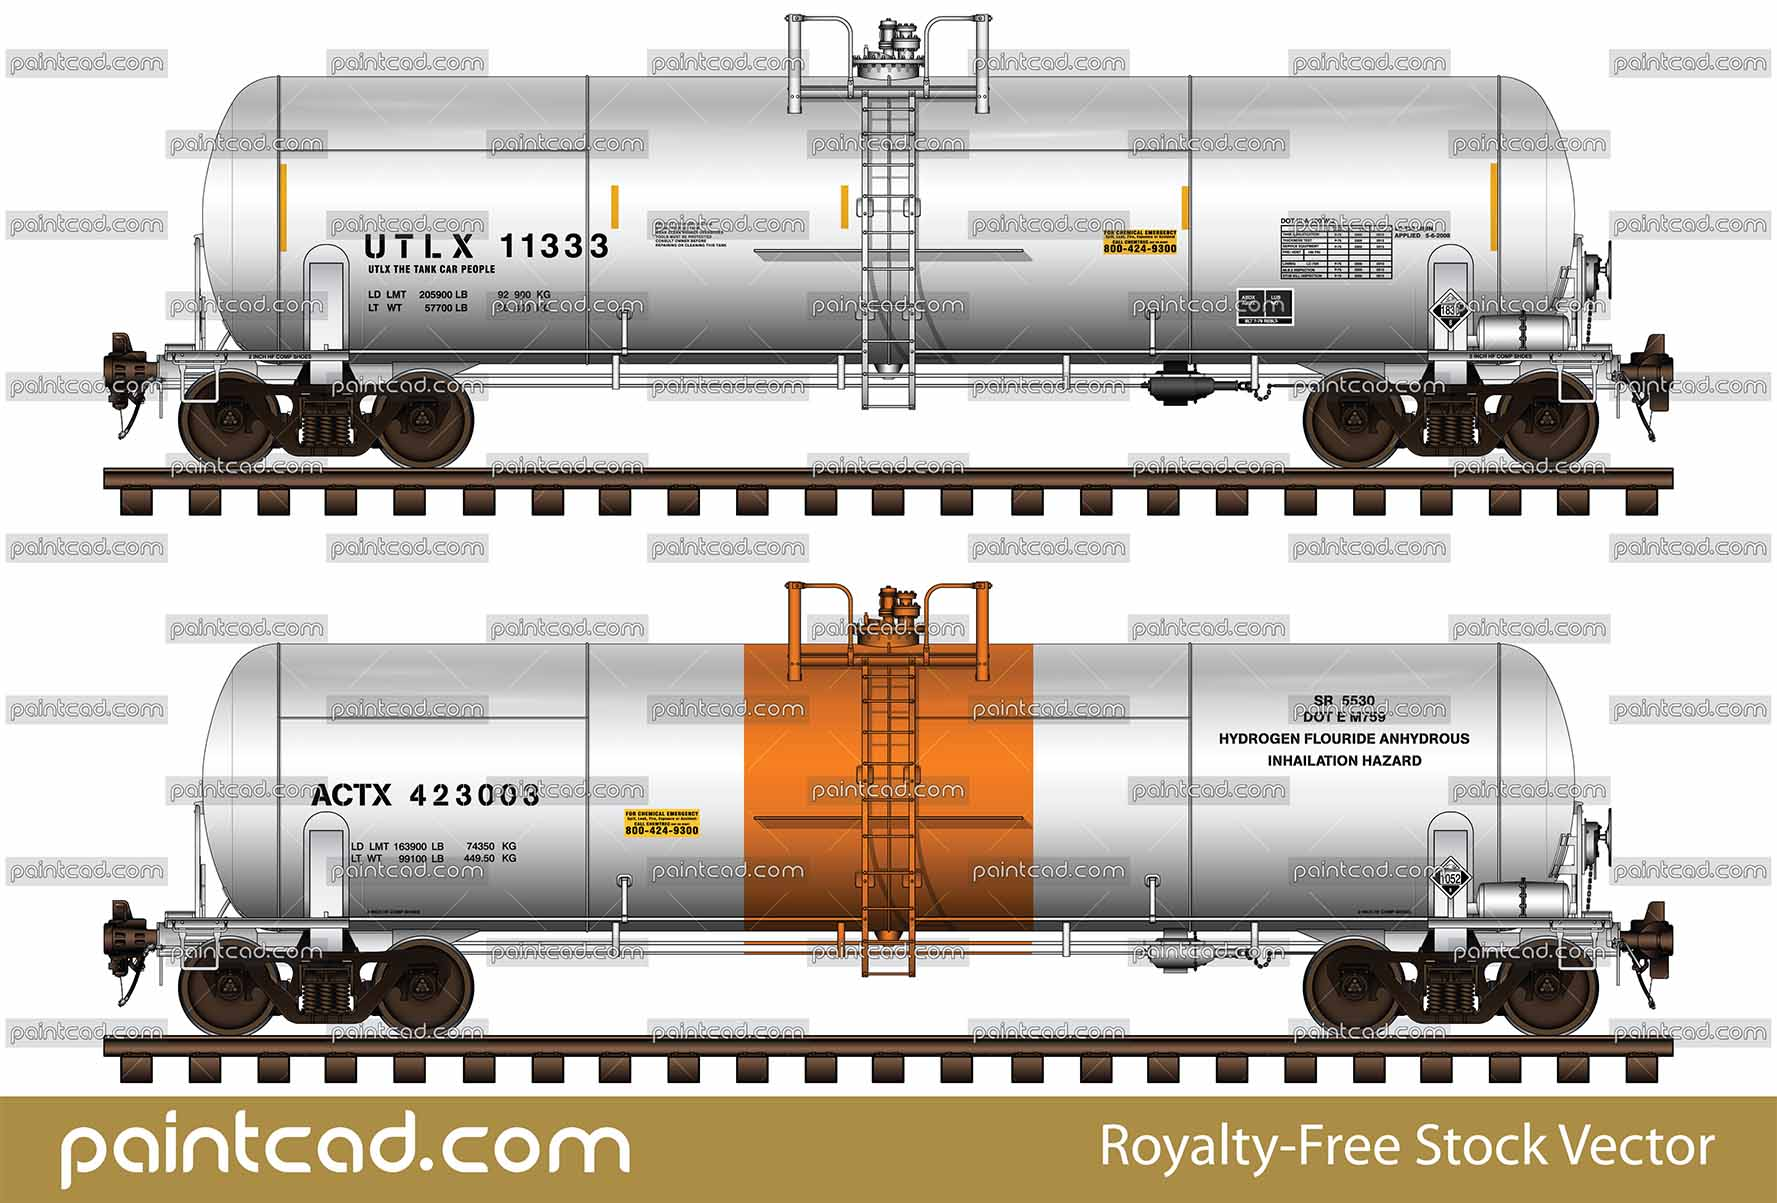 ACTX and UTLX railroad tank cars with volume 20 900 gal - vector illustration